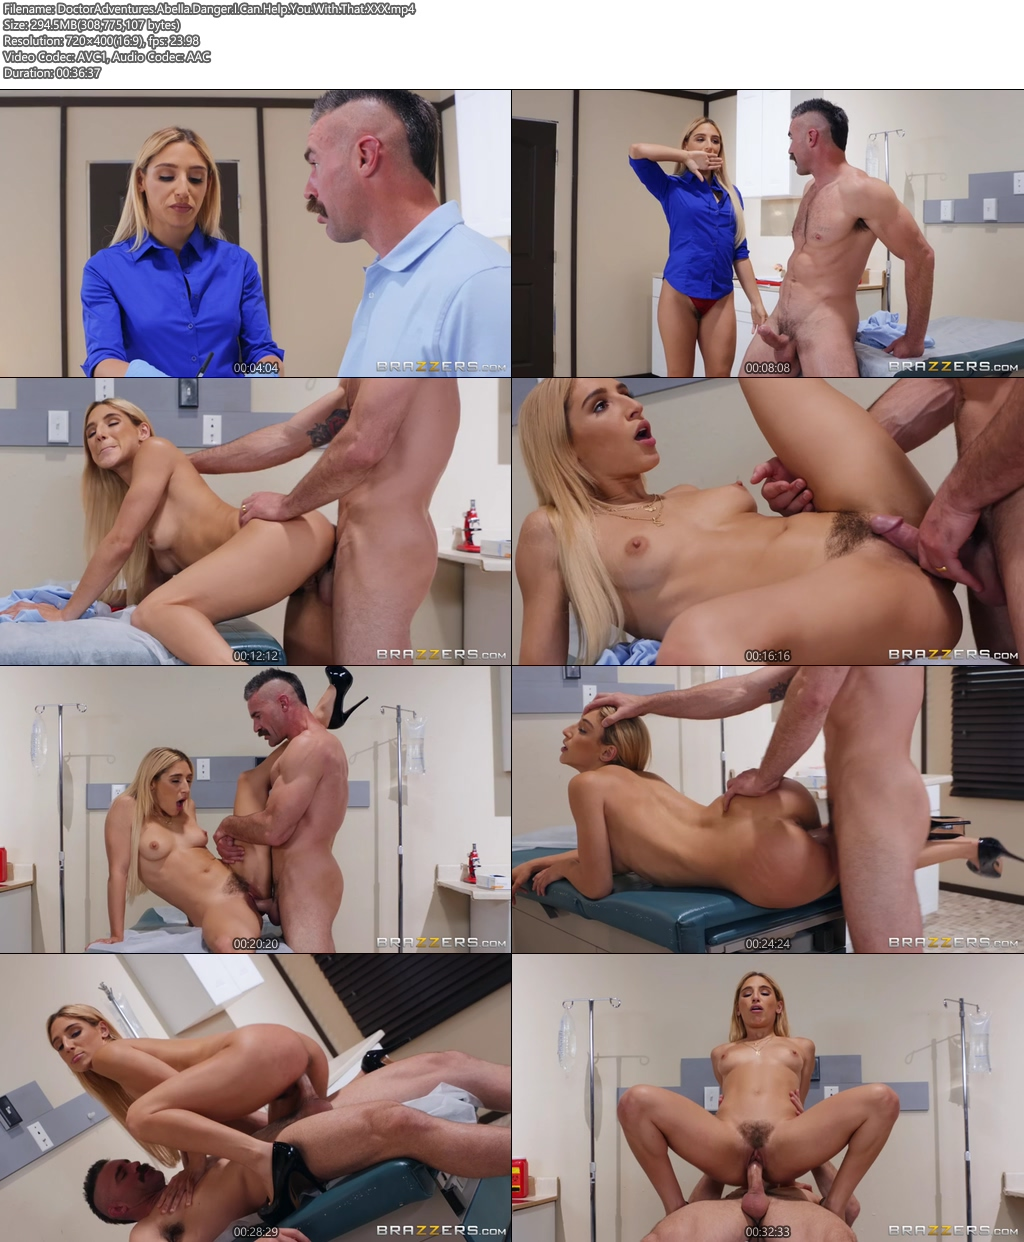 [18+] DoctorAdventures Abella Danger Full XVideos I Can Help You With That XXX Screenshot